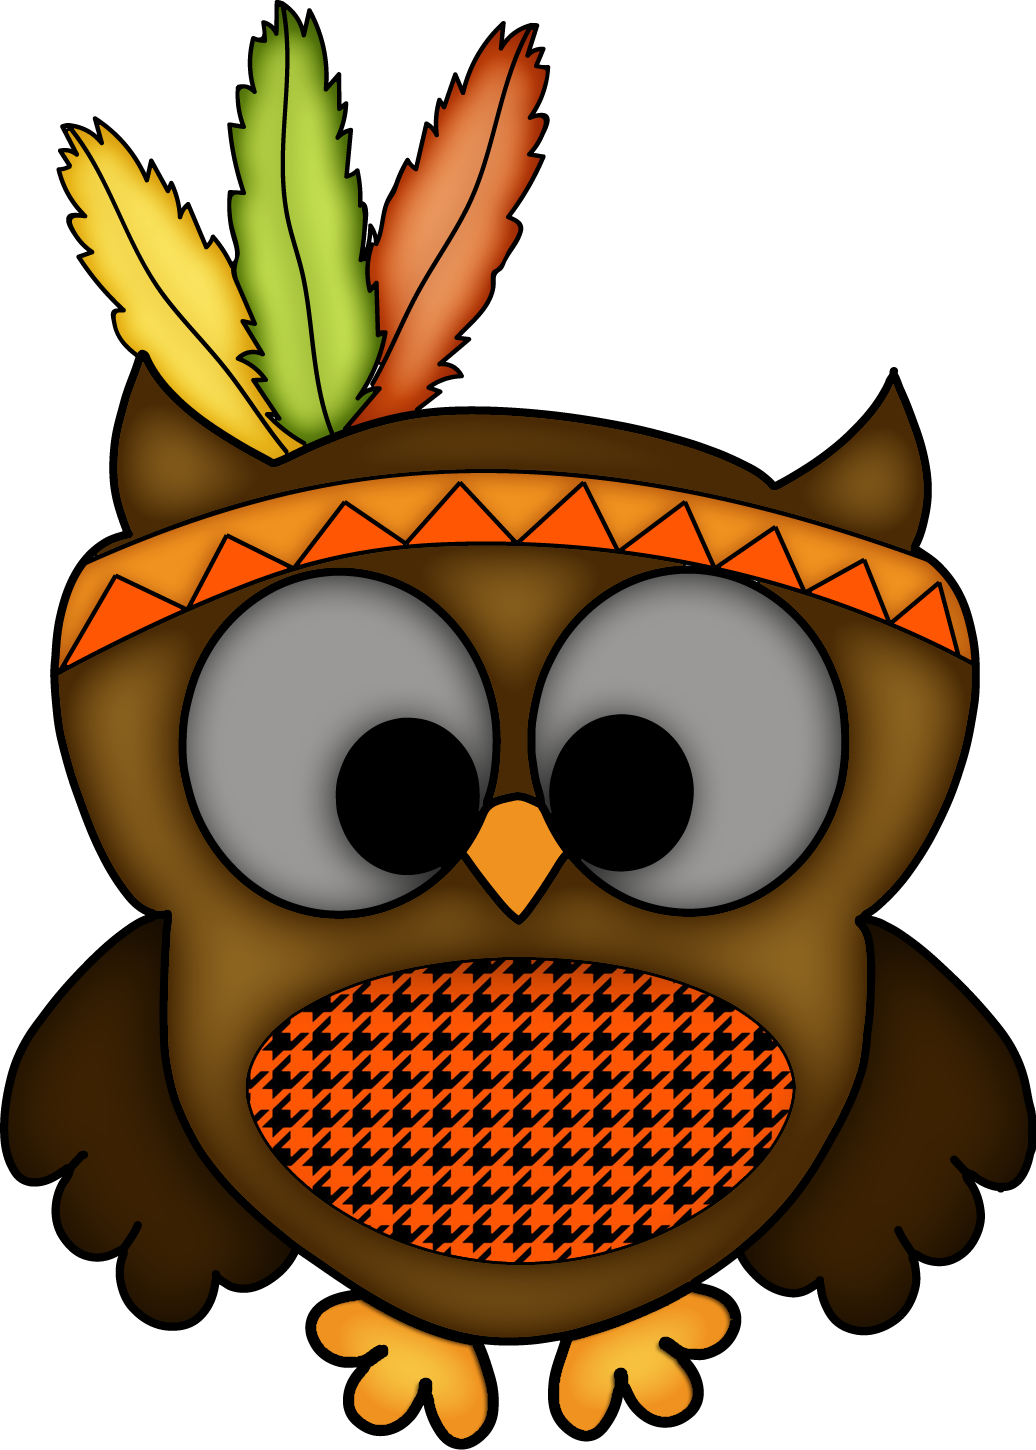 thanksgiving owl sample owls pinterest owl thanksgiving and rh pinterest com owl thanksgiving clipart owl thanksgiving clipart